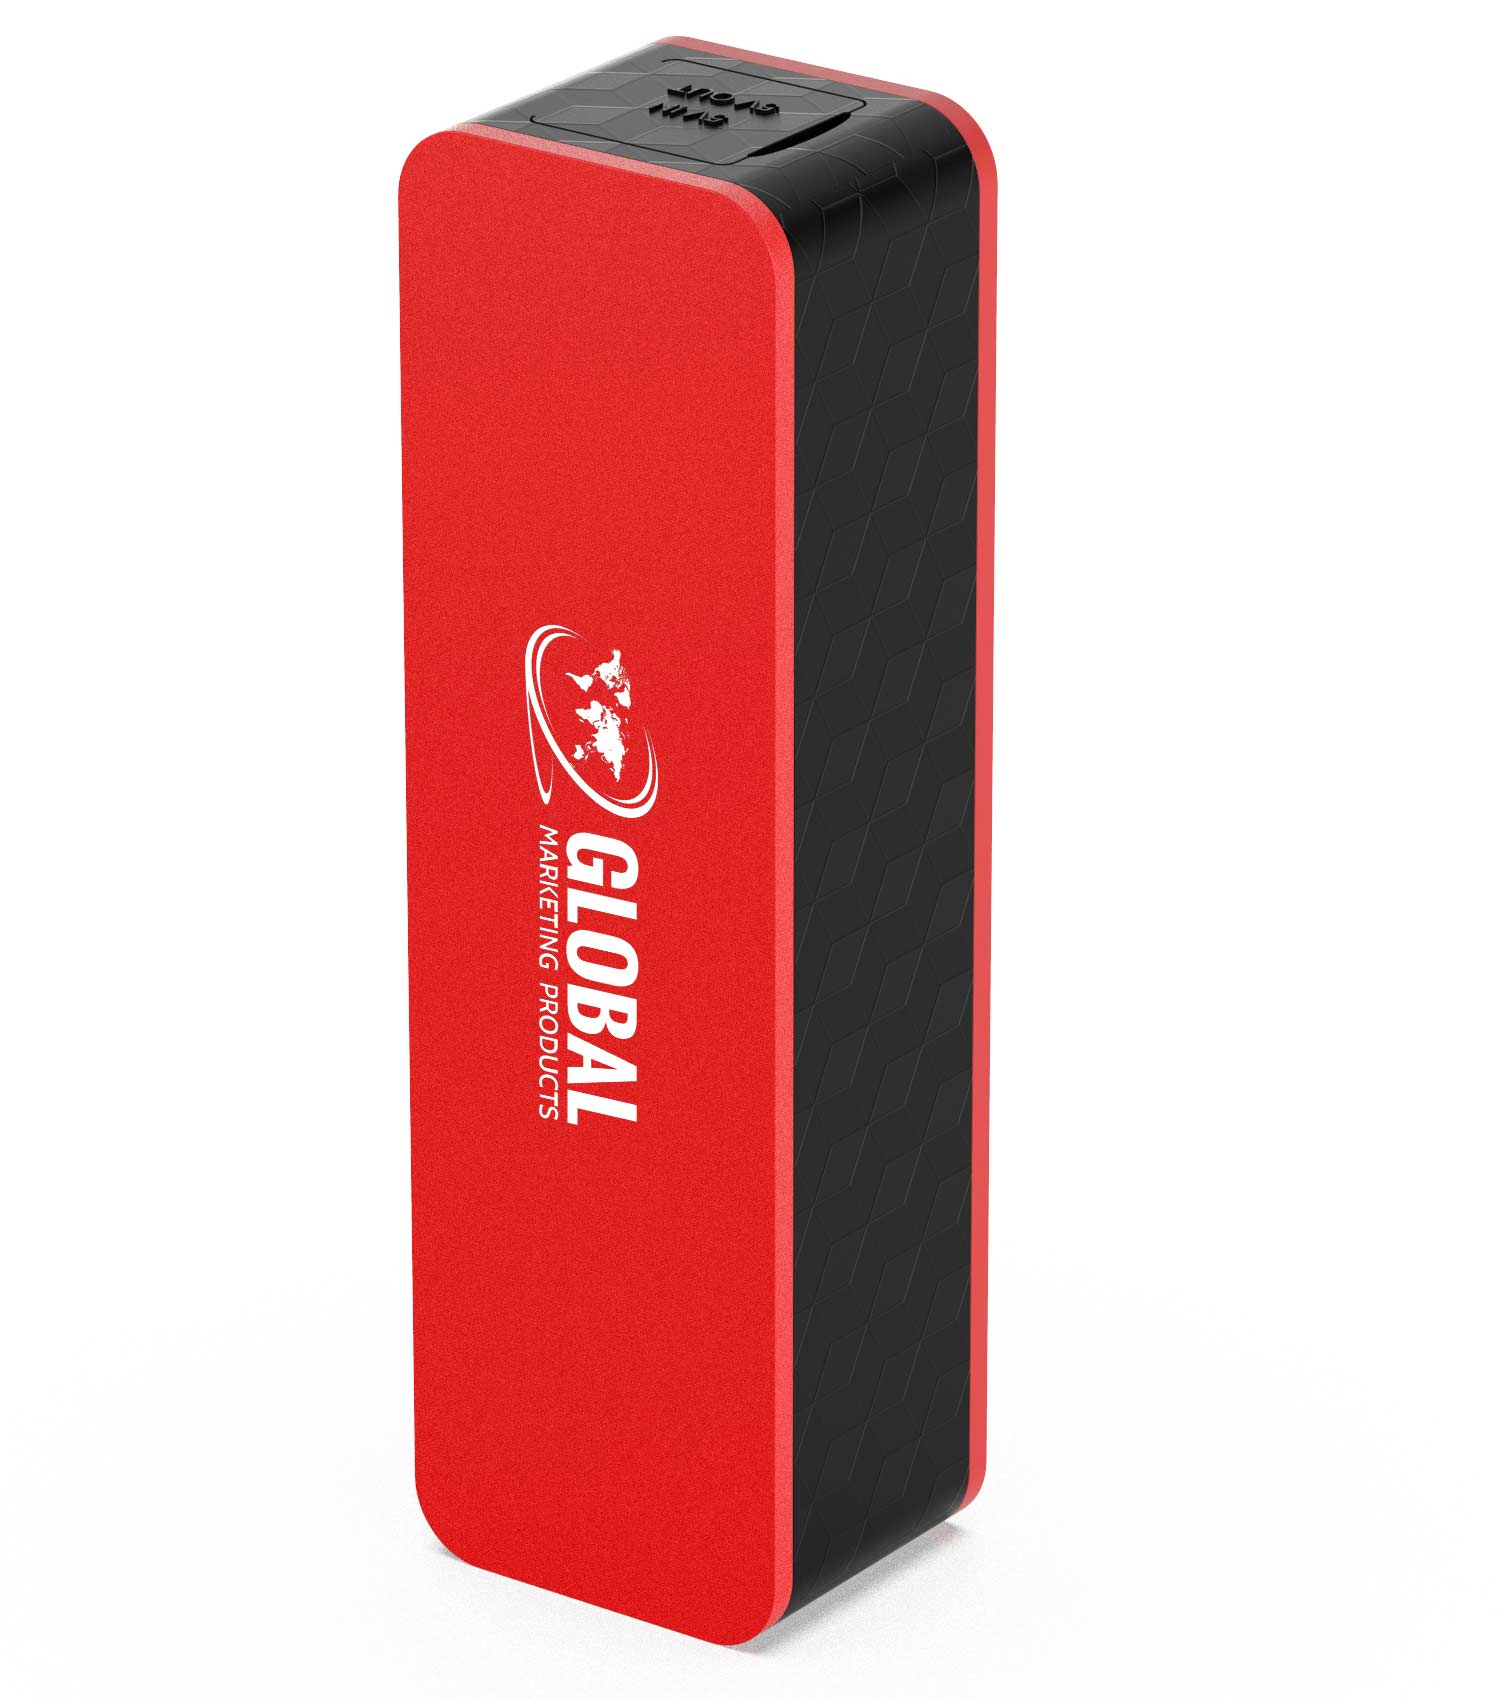 power_bank_1802_red